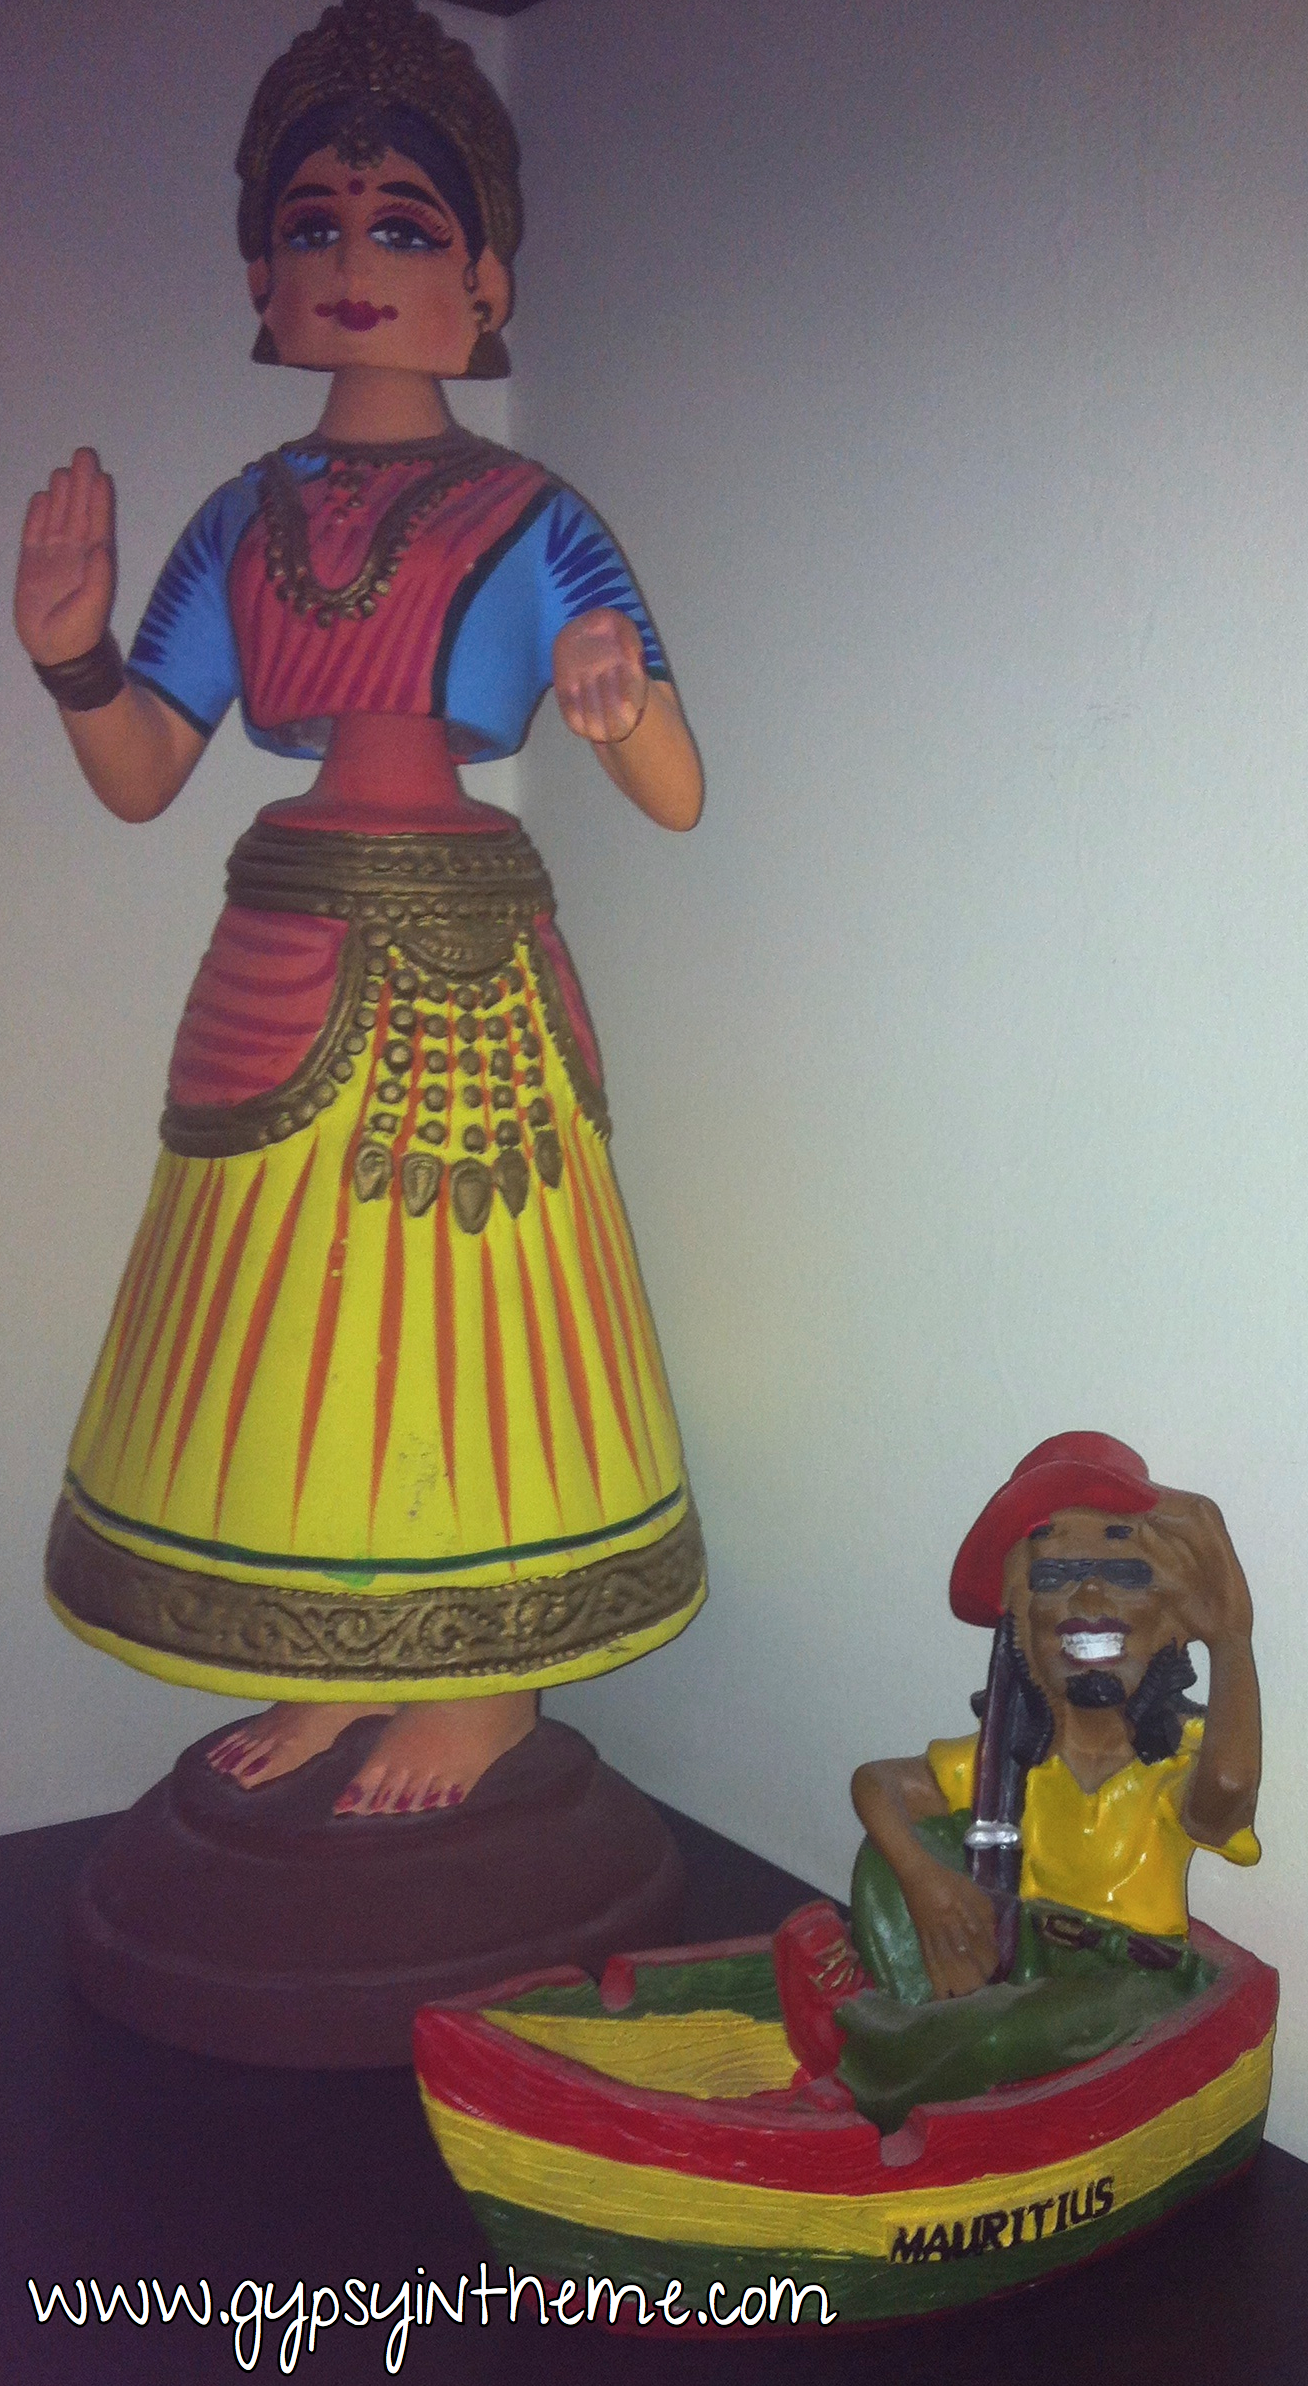 Mauritius Man and Bobble Babe.  Perhaps our tackiest yet best conversation pieces ever.  The latter was a gift from a friend from Mumbai; you tap on her skirt and her hips, torso and head bobble.  If you've lived in the Middle East, the bobble head movement is somewhat of an enigma, and alway a good conversation starter.  Mauritius man was a gift from our Ukranian/Dutch friends.  He just has people wondering whether he is holding a rifle or a super huge doob.  The jury's still out on that one.  Mauritius Man and Bobble Babe also hang out behind the bar.